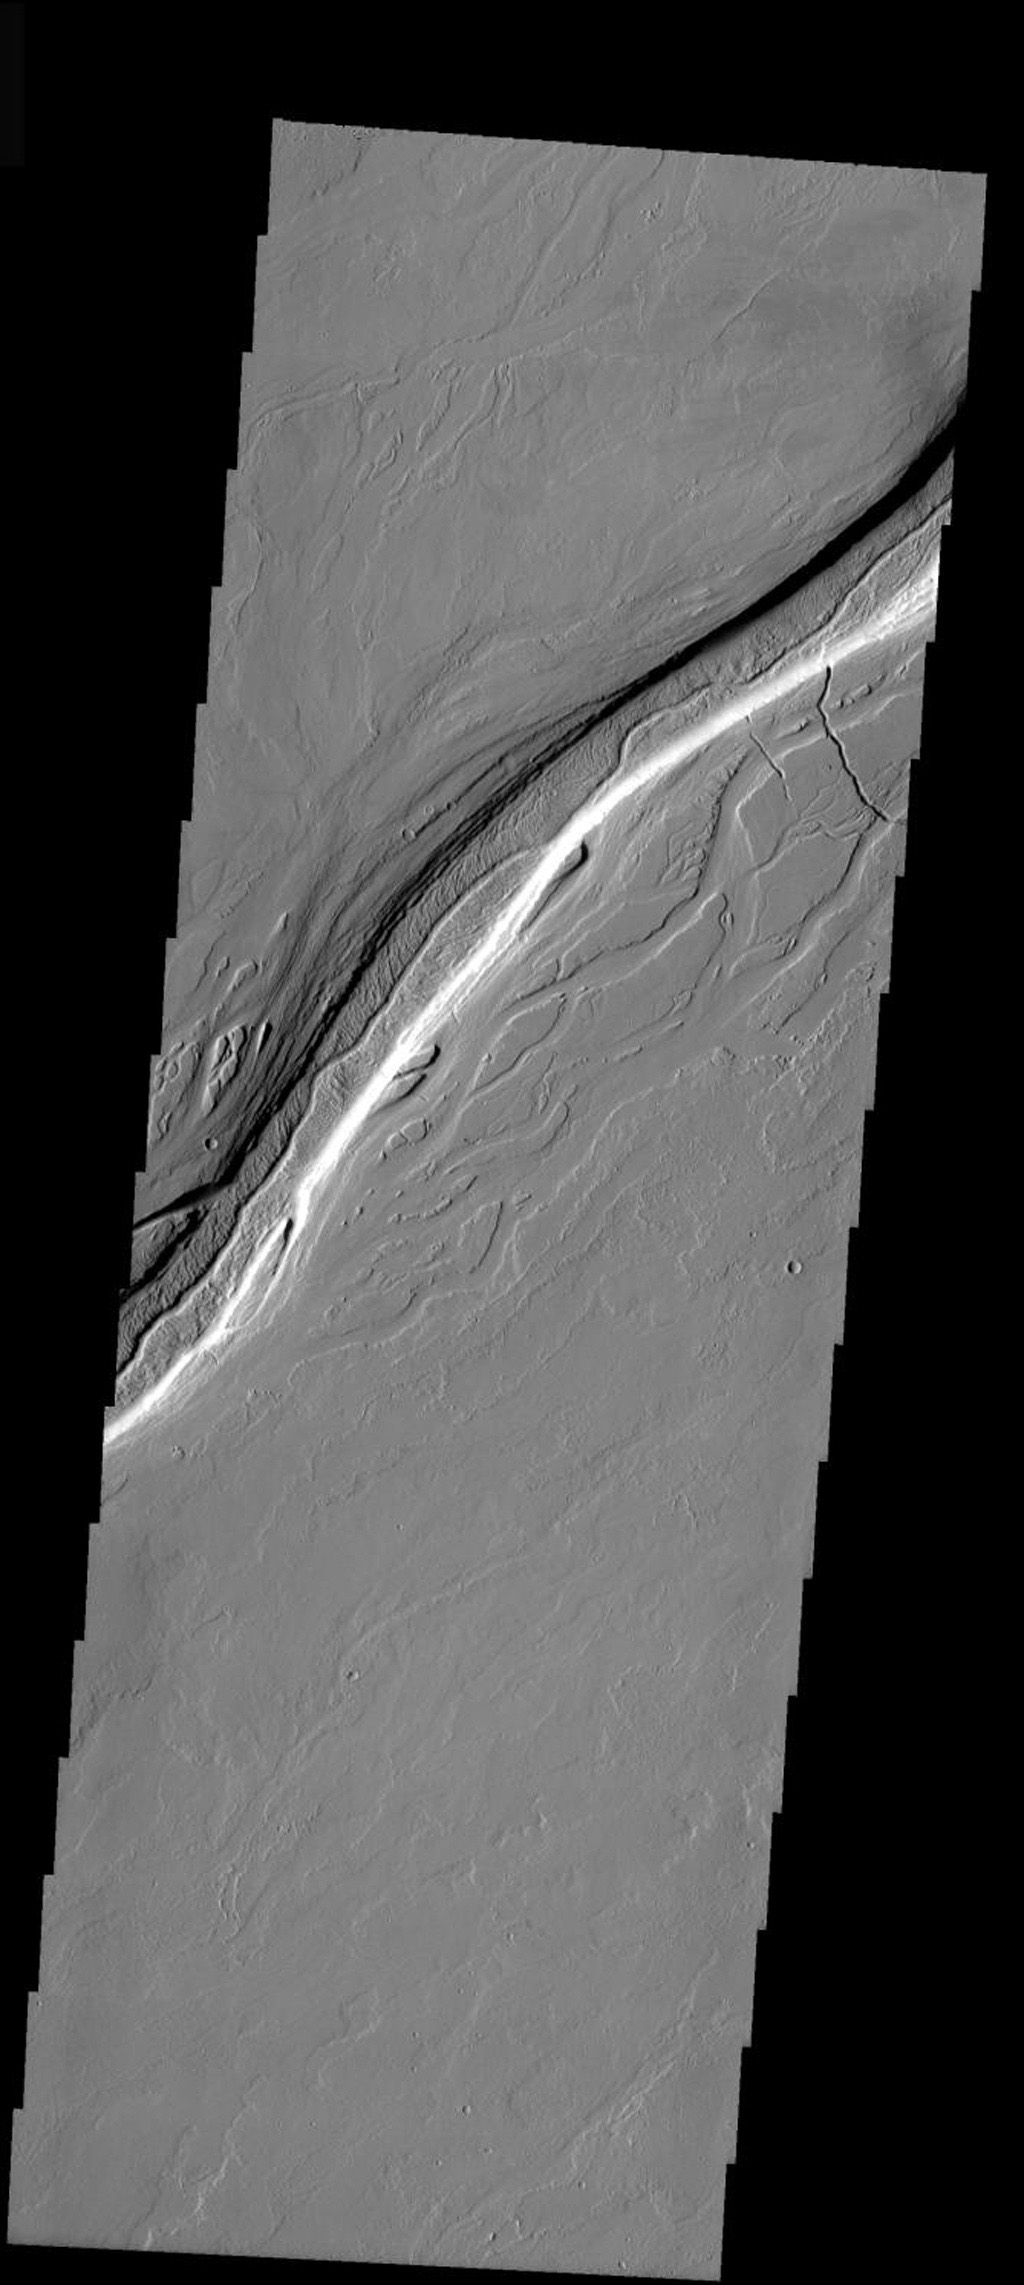 This image released on Dec 1, 2004 from NASA's 2001 Mars Odyssey shows Olympica Fossae. Located between Olympus Mons and Alba Patera on Mars, this entire region is comprised of volcanic flows. All the channels were created by volcanic activity.